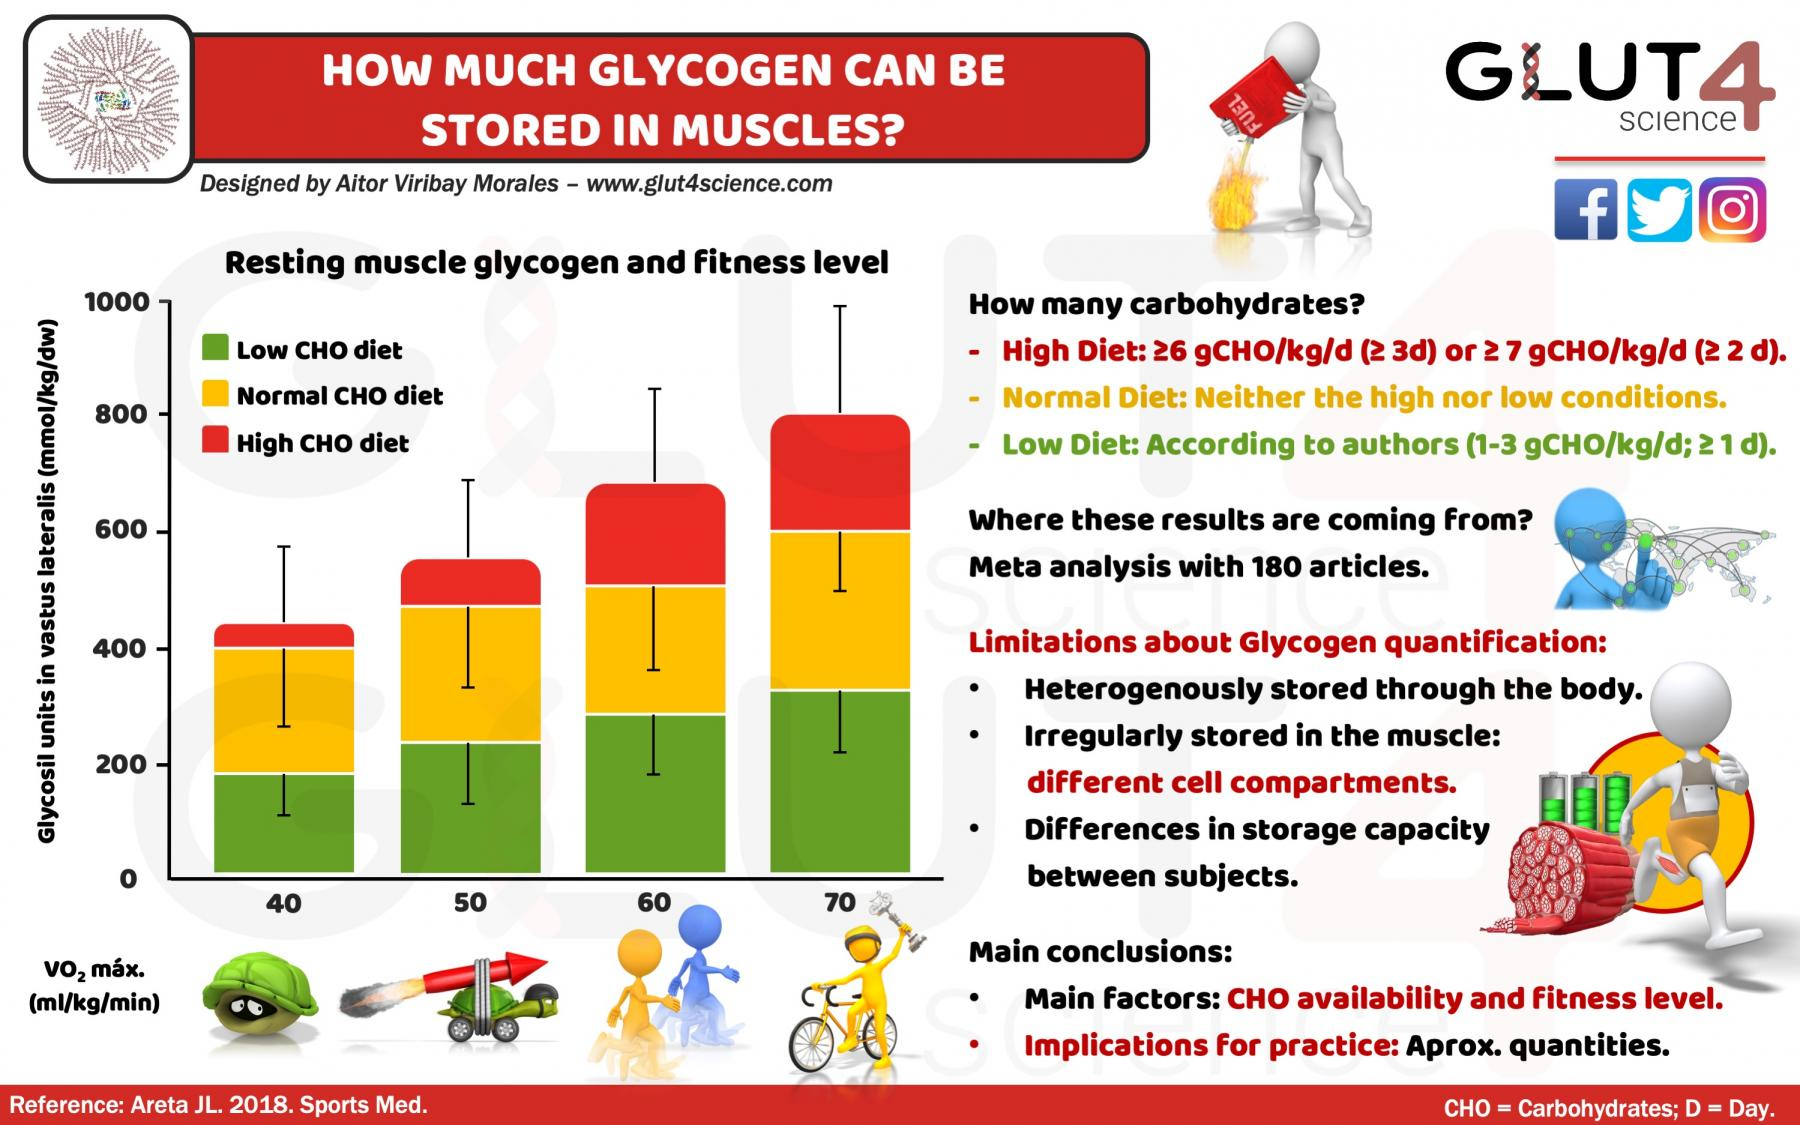 How much glycogen can be stored in muscles?